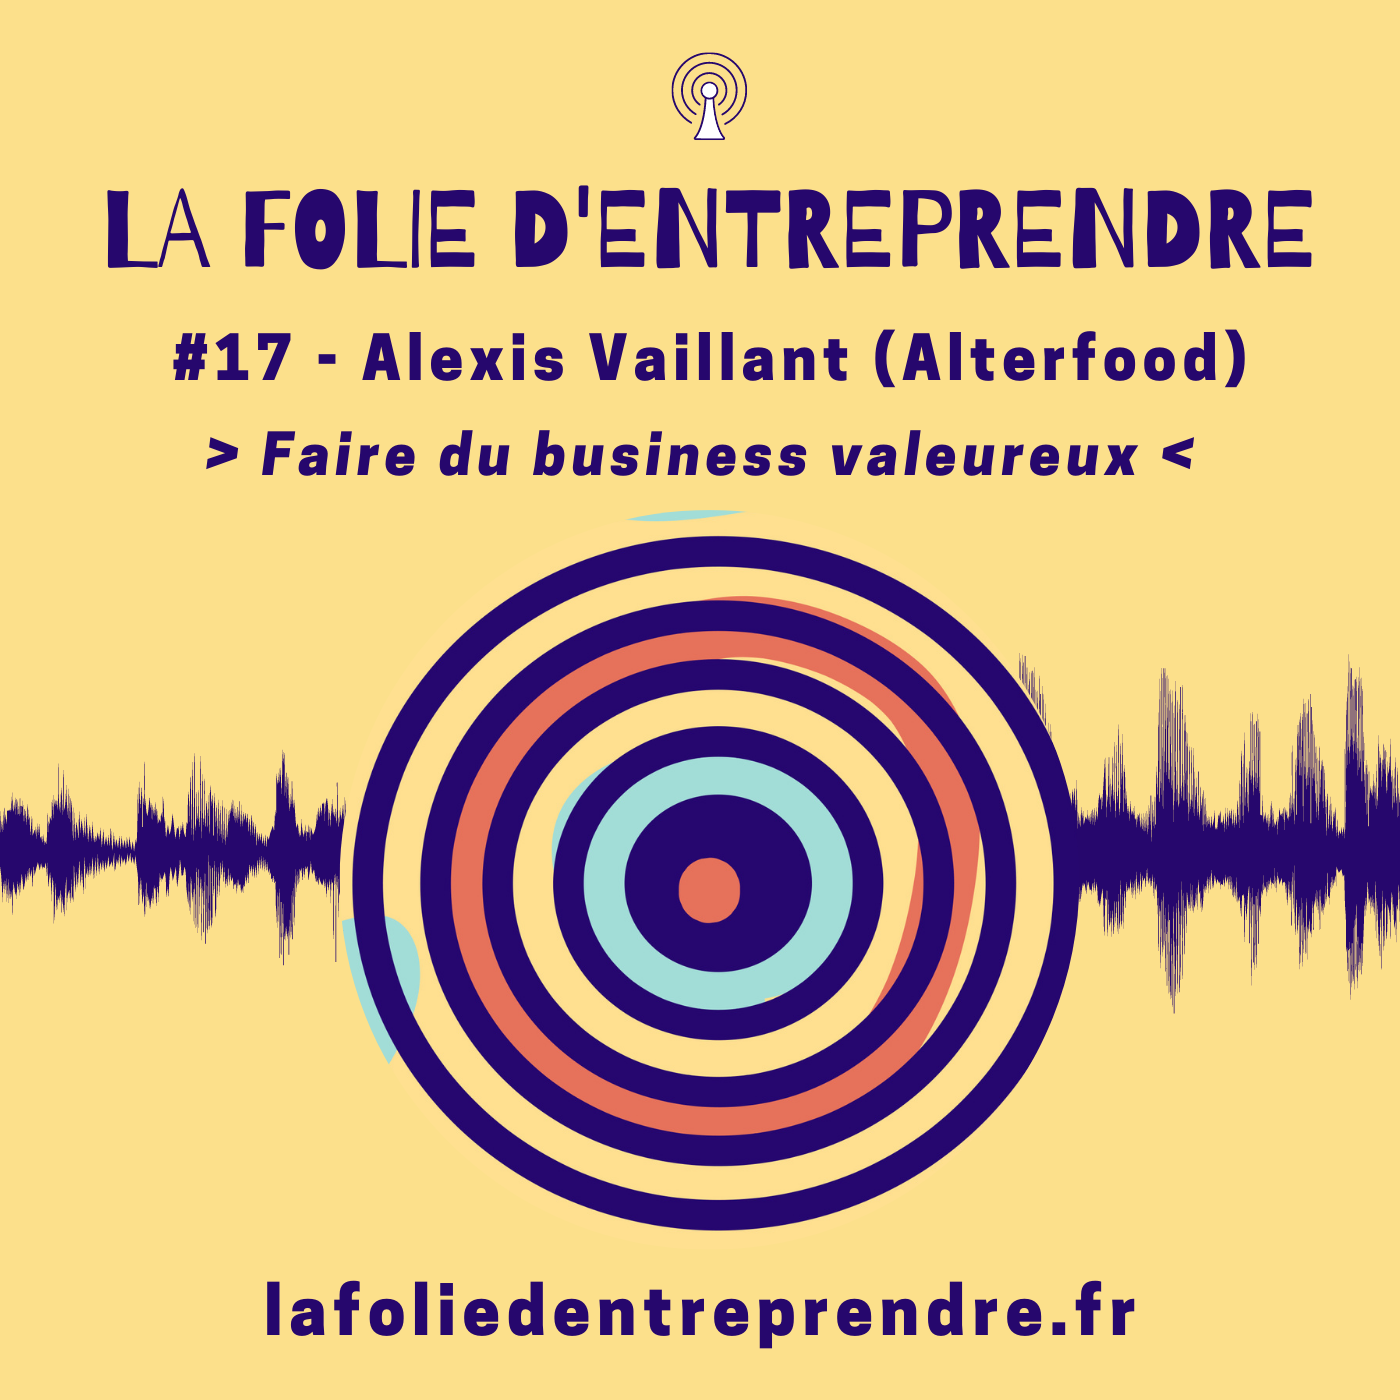 #17 - Faire du business valeureux - Alexis Vaillant (AlterFood)